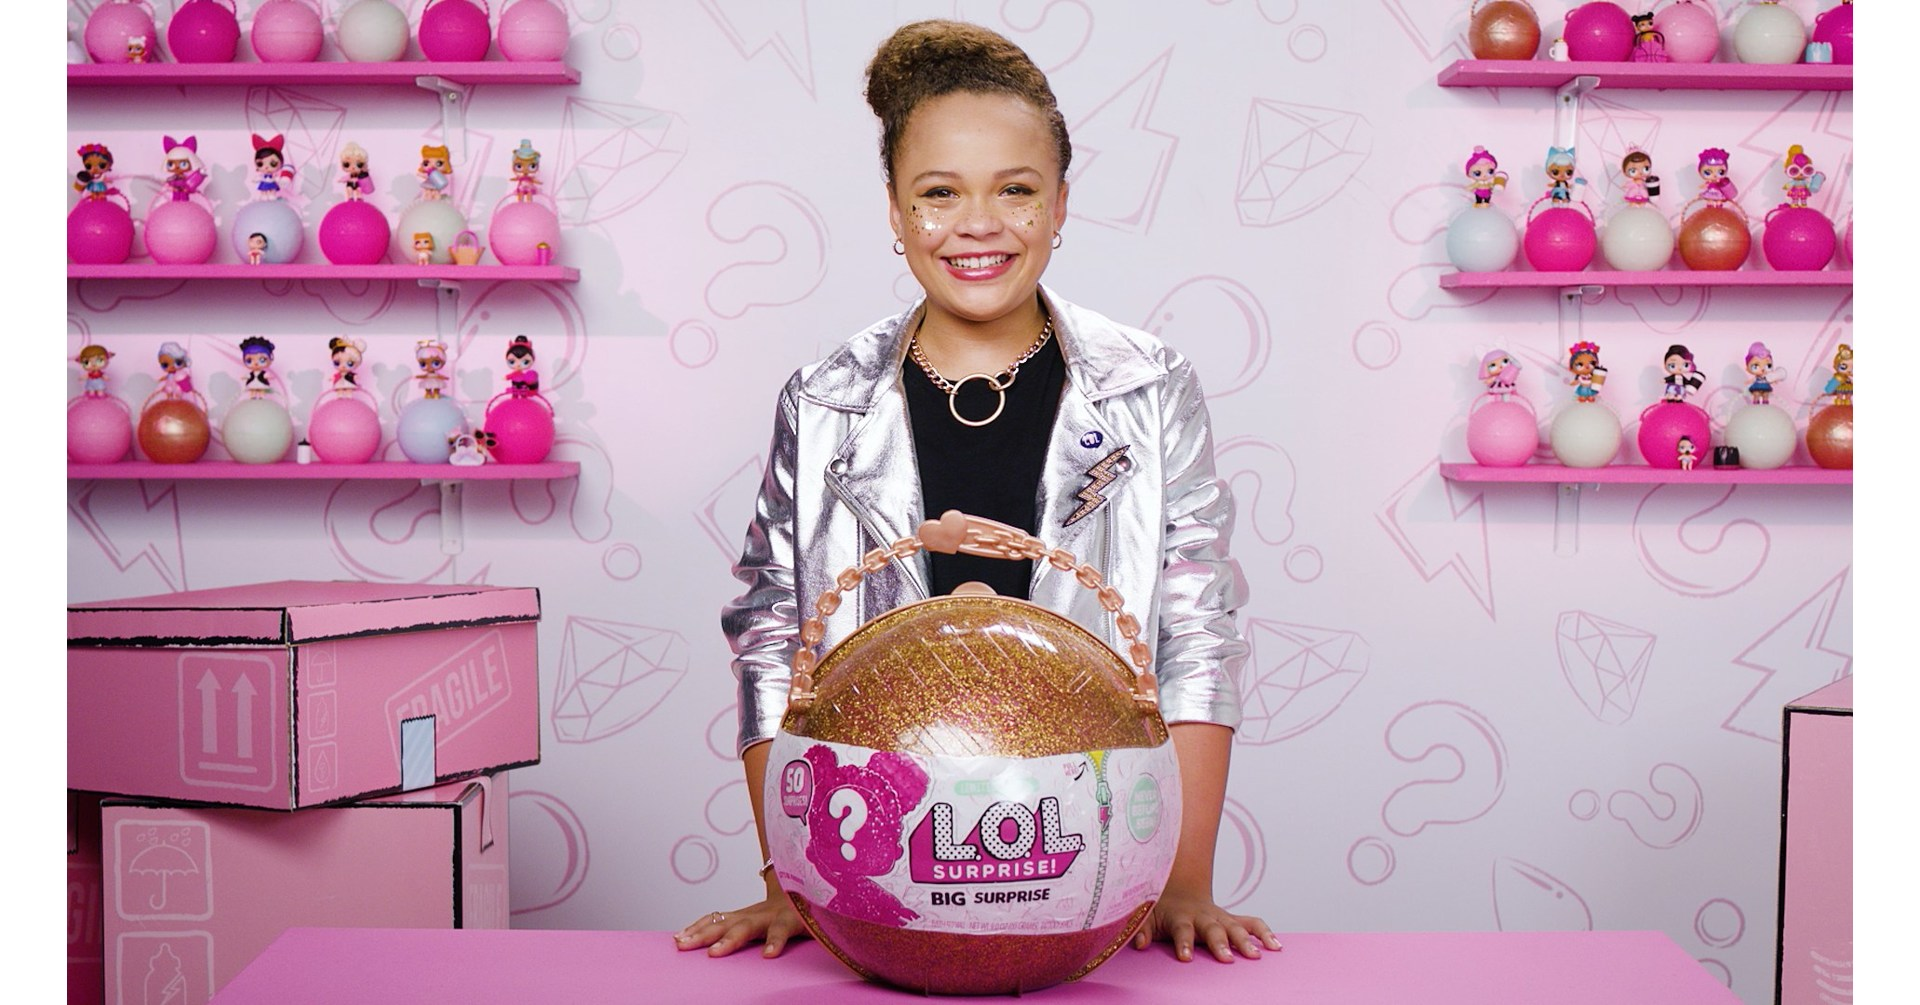 MGA Entertainment Launches World's First-Ever Unboxing Video